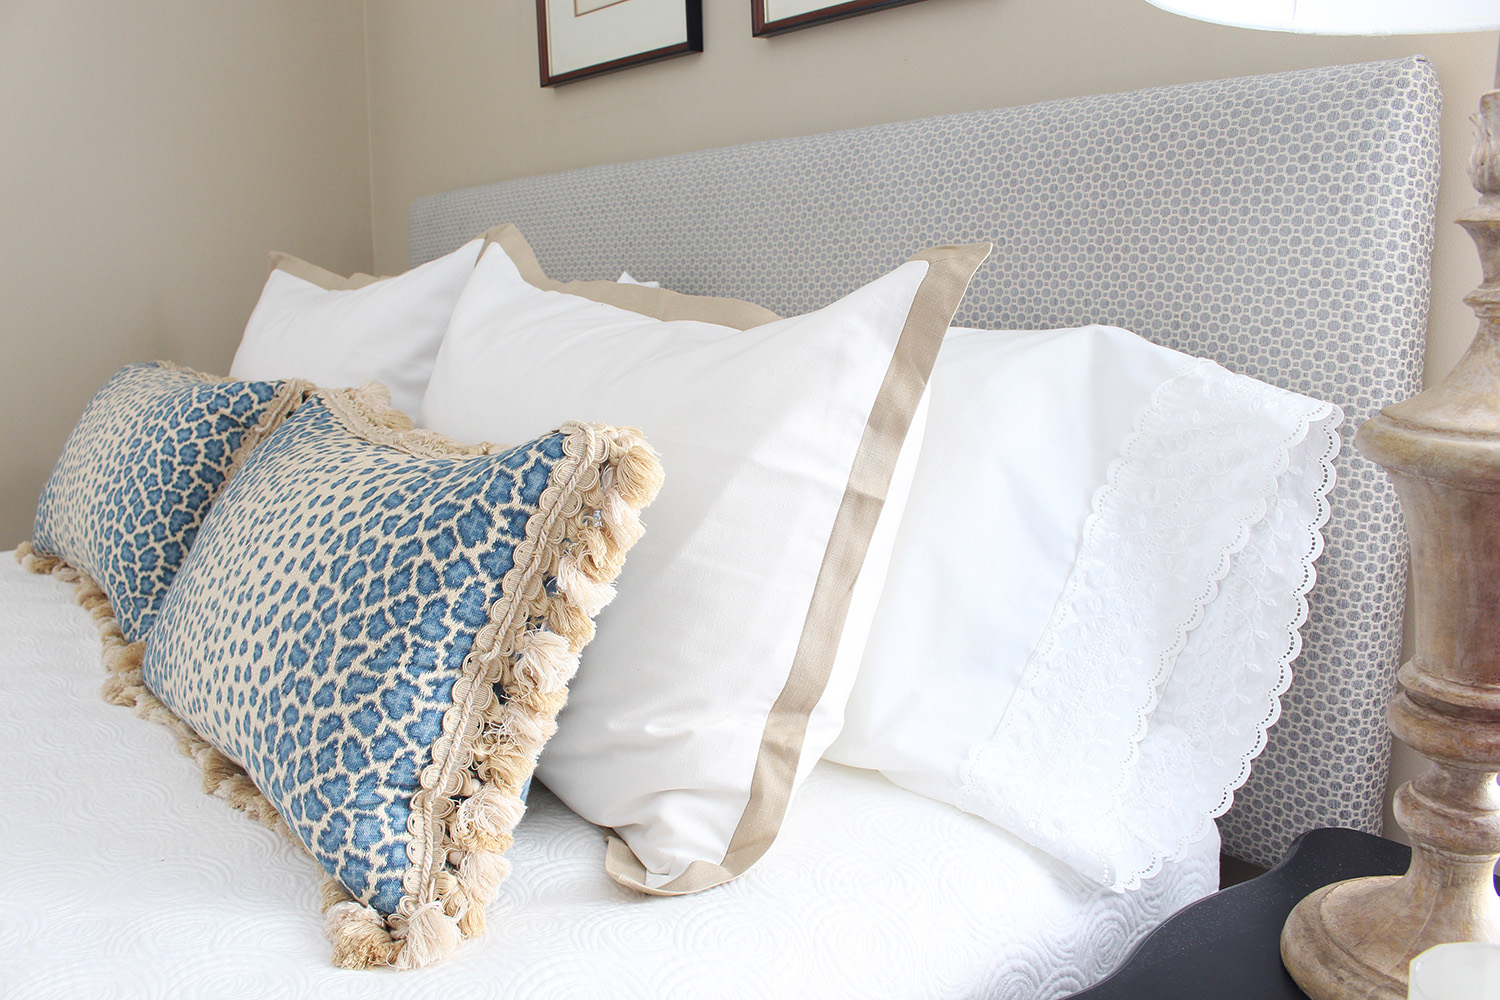 DIY headboard - custom headboard at a budget friendly price! Follow the tutorial so you can make your own.